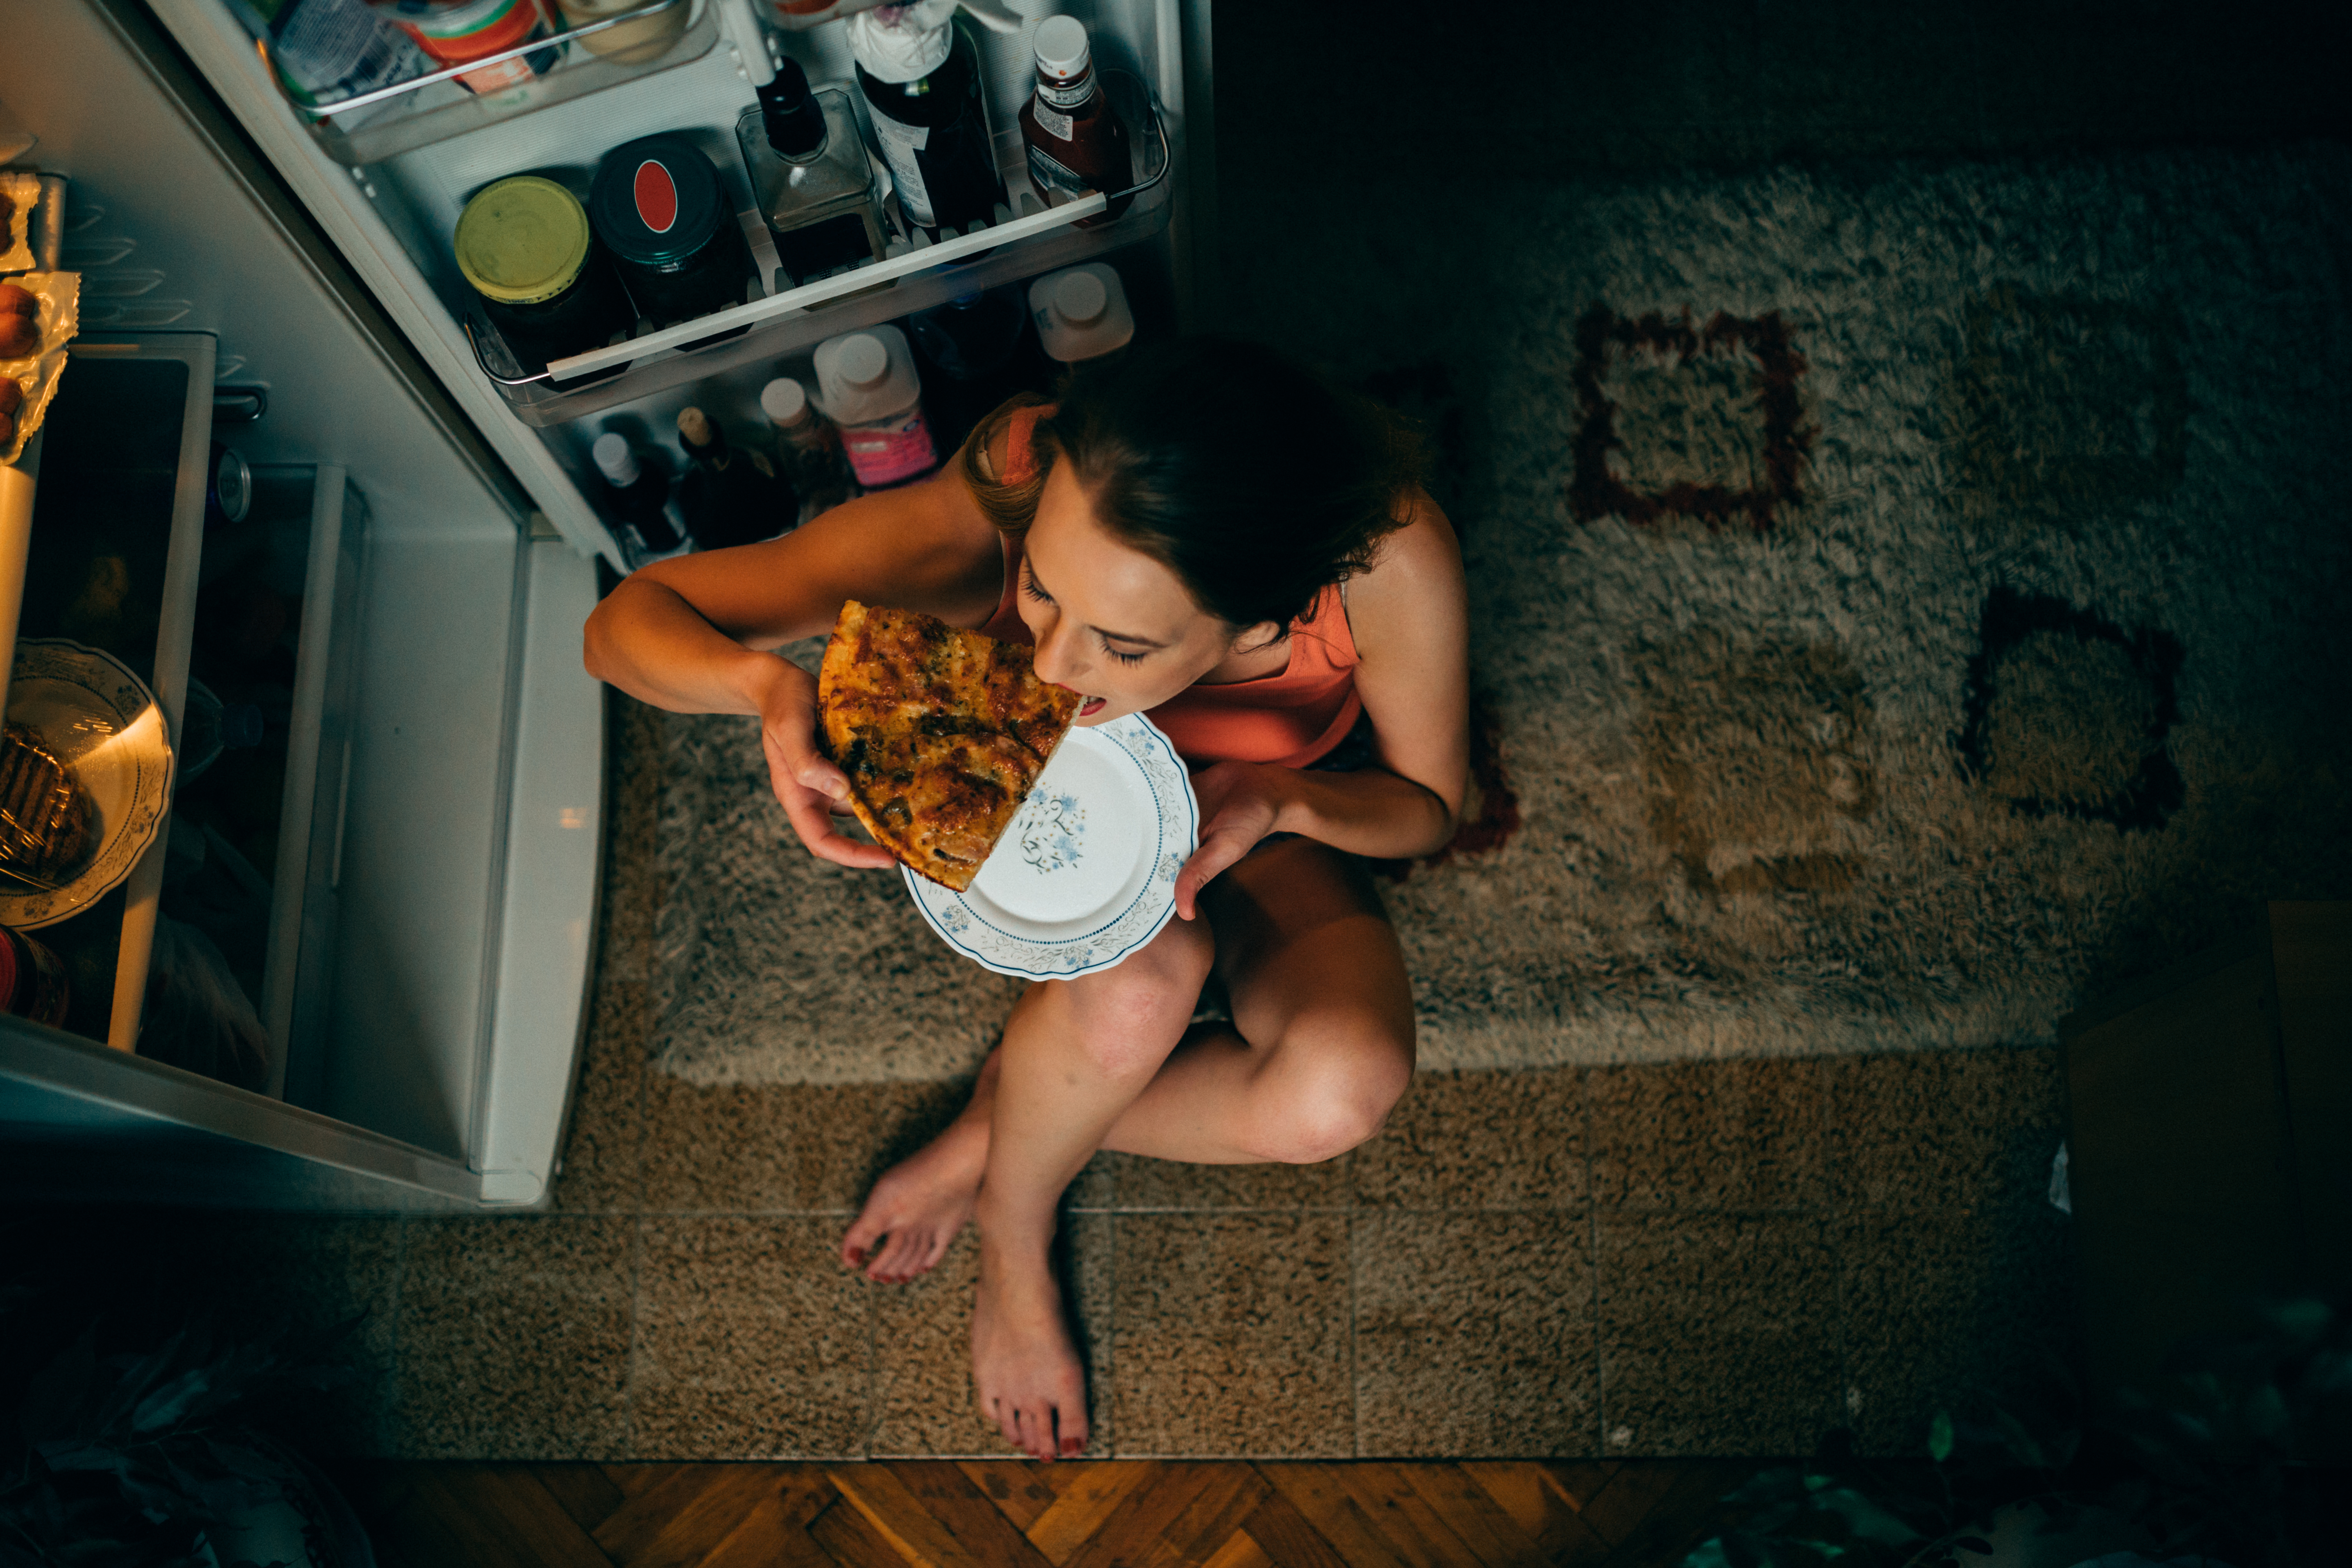 A young woman eating pizza in front of the refrigerator late at night. (Getty Images)